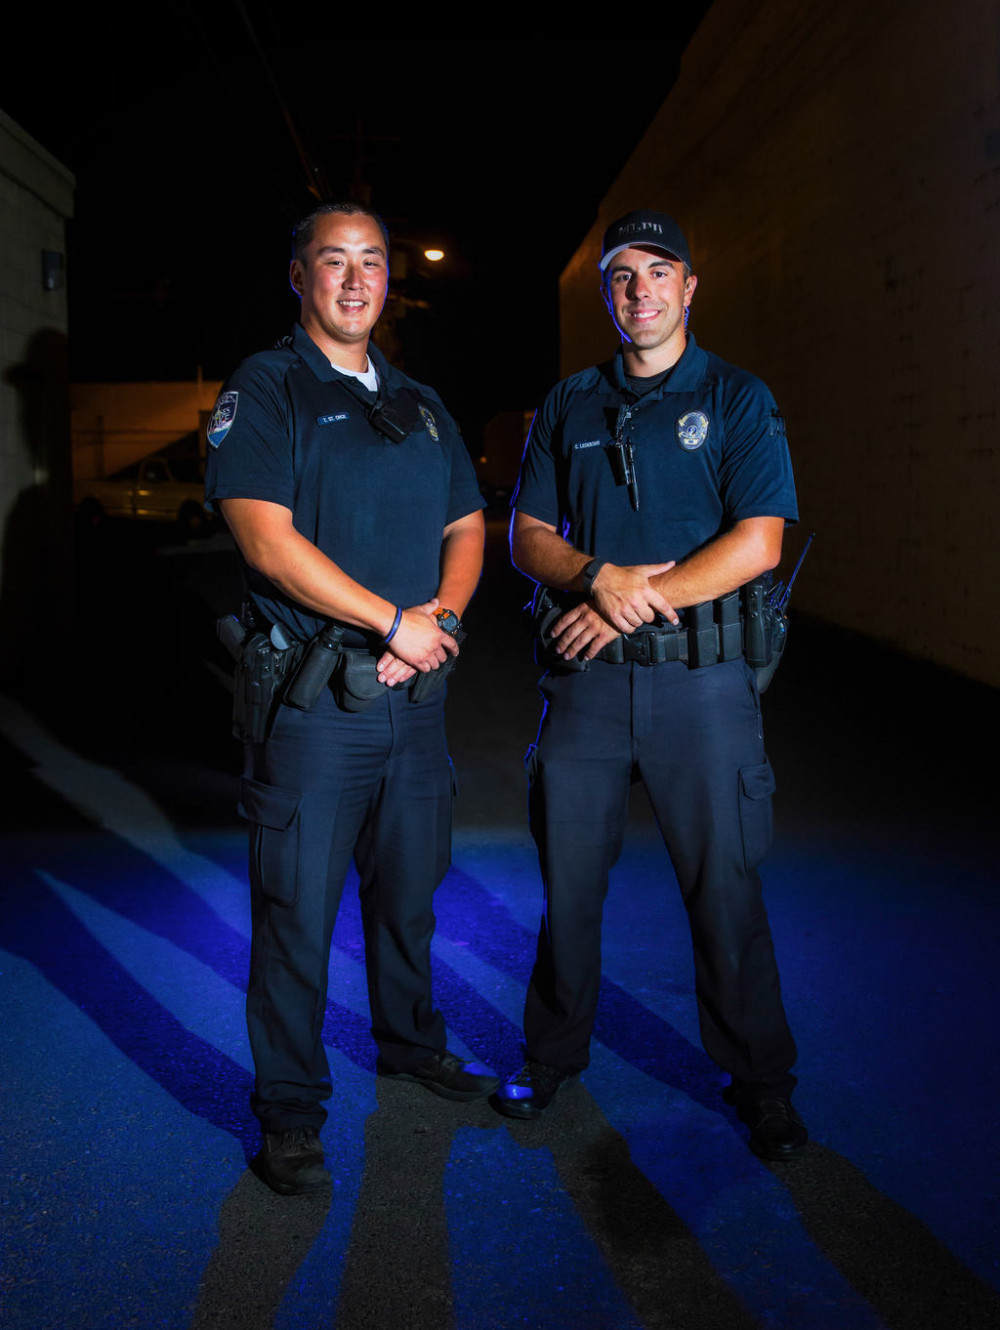 Officer T. St. Onge, Officer C. Ledeboer of Moses Lake Police Department